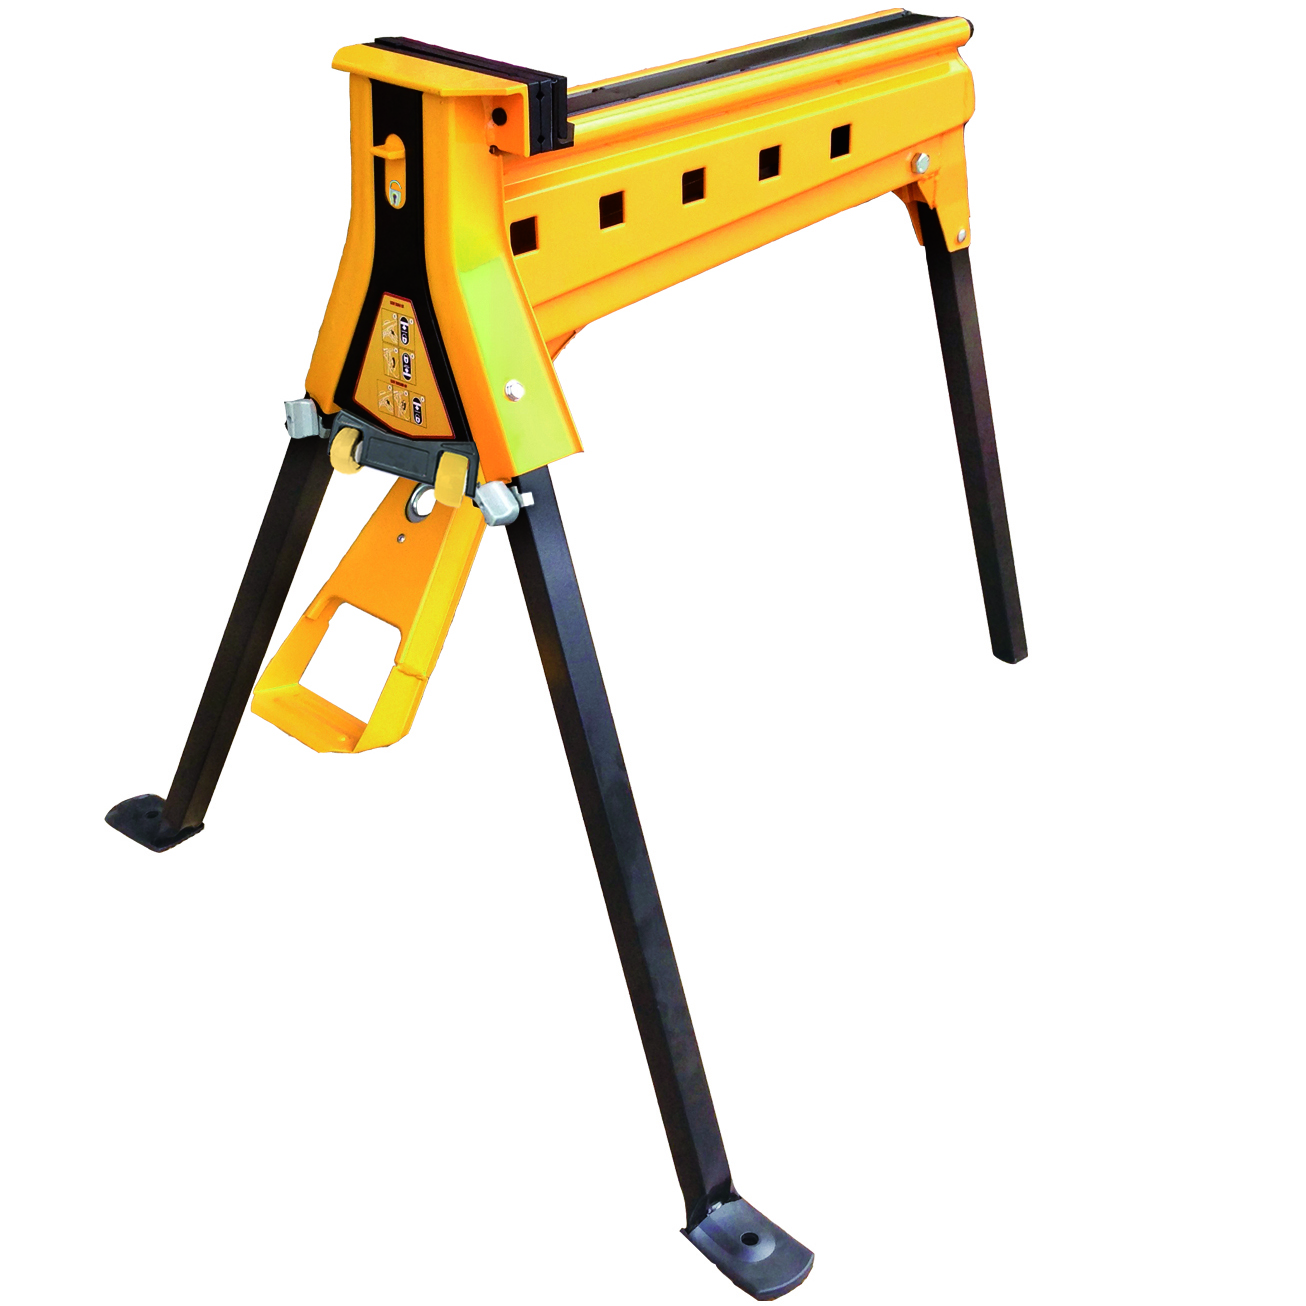 Fine Jaw Horse For Woodworking Bench View Jaw Horse Huibang Product Details From Laizhou Huibang Machinery Trading Company Ltd On Alibaba Com Pabps2019 Chair Design Images Pabps2019Com